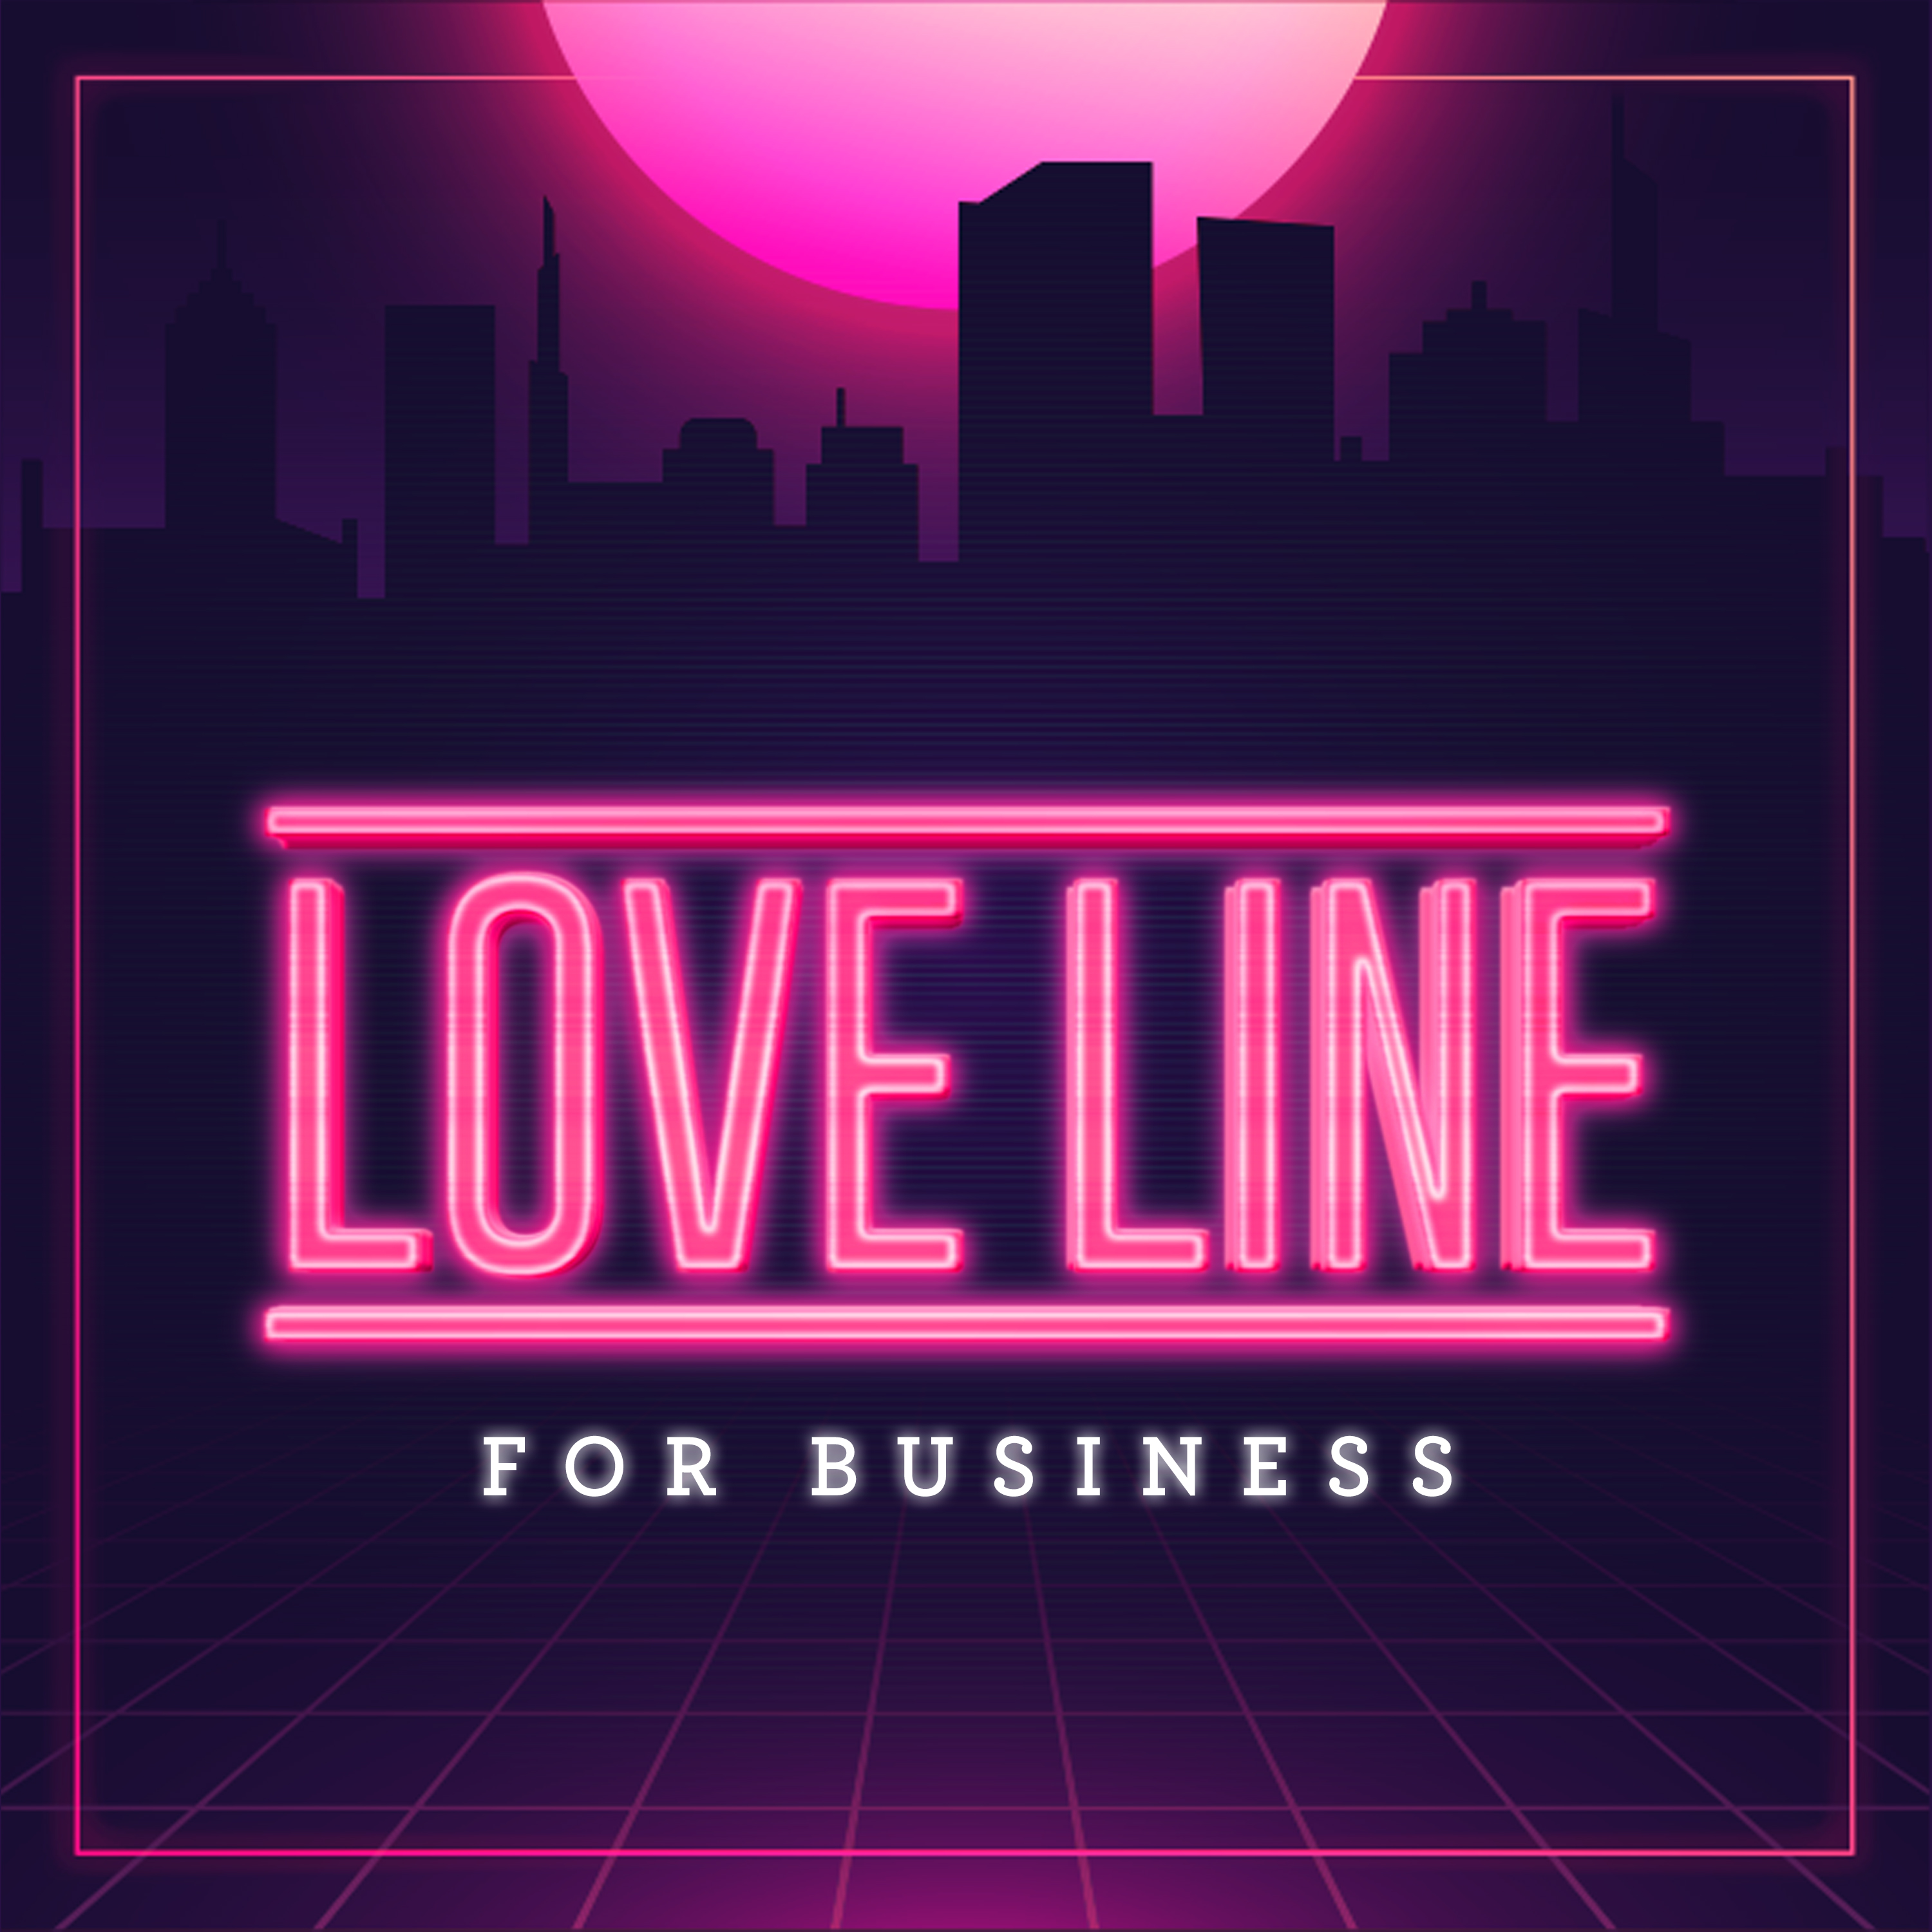 Love Line for Business #44 - Craig Burgess has solved daily content creation across multiple channels while building his personal brand